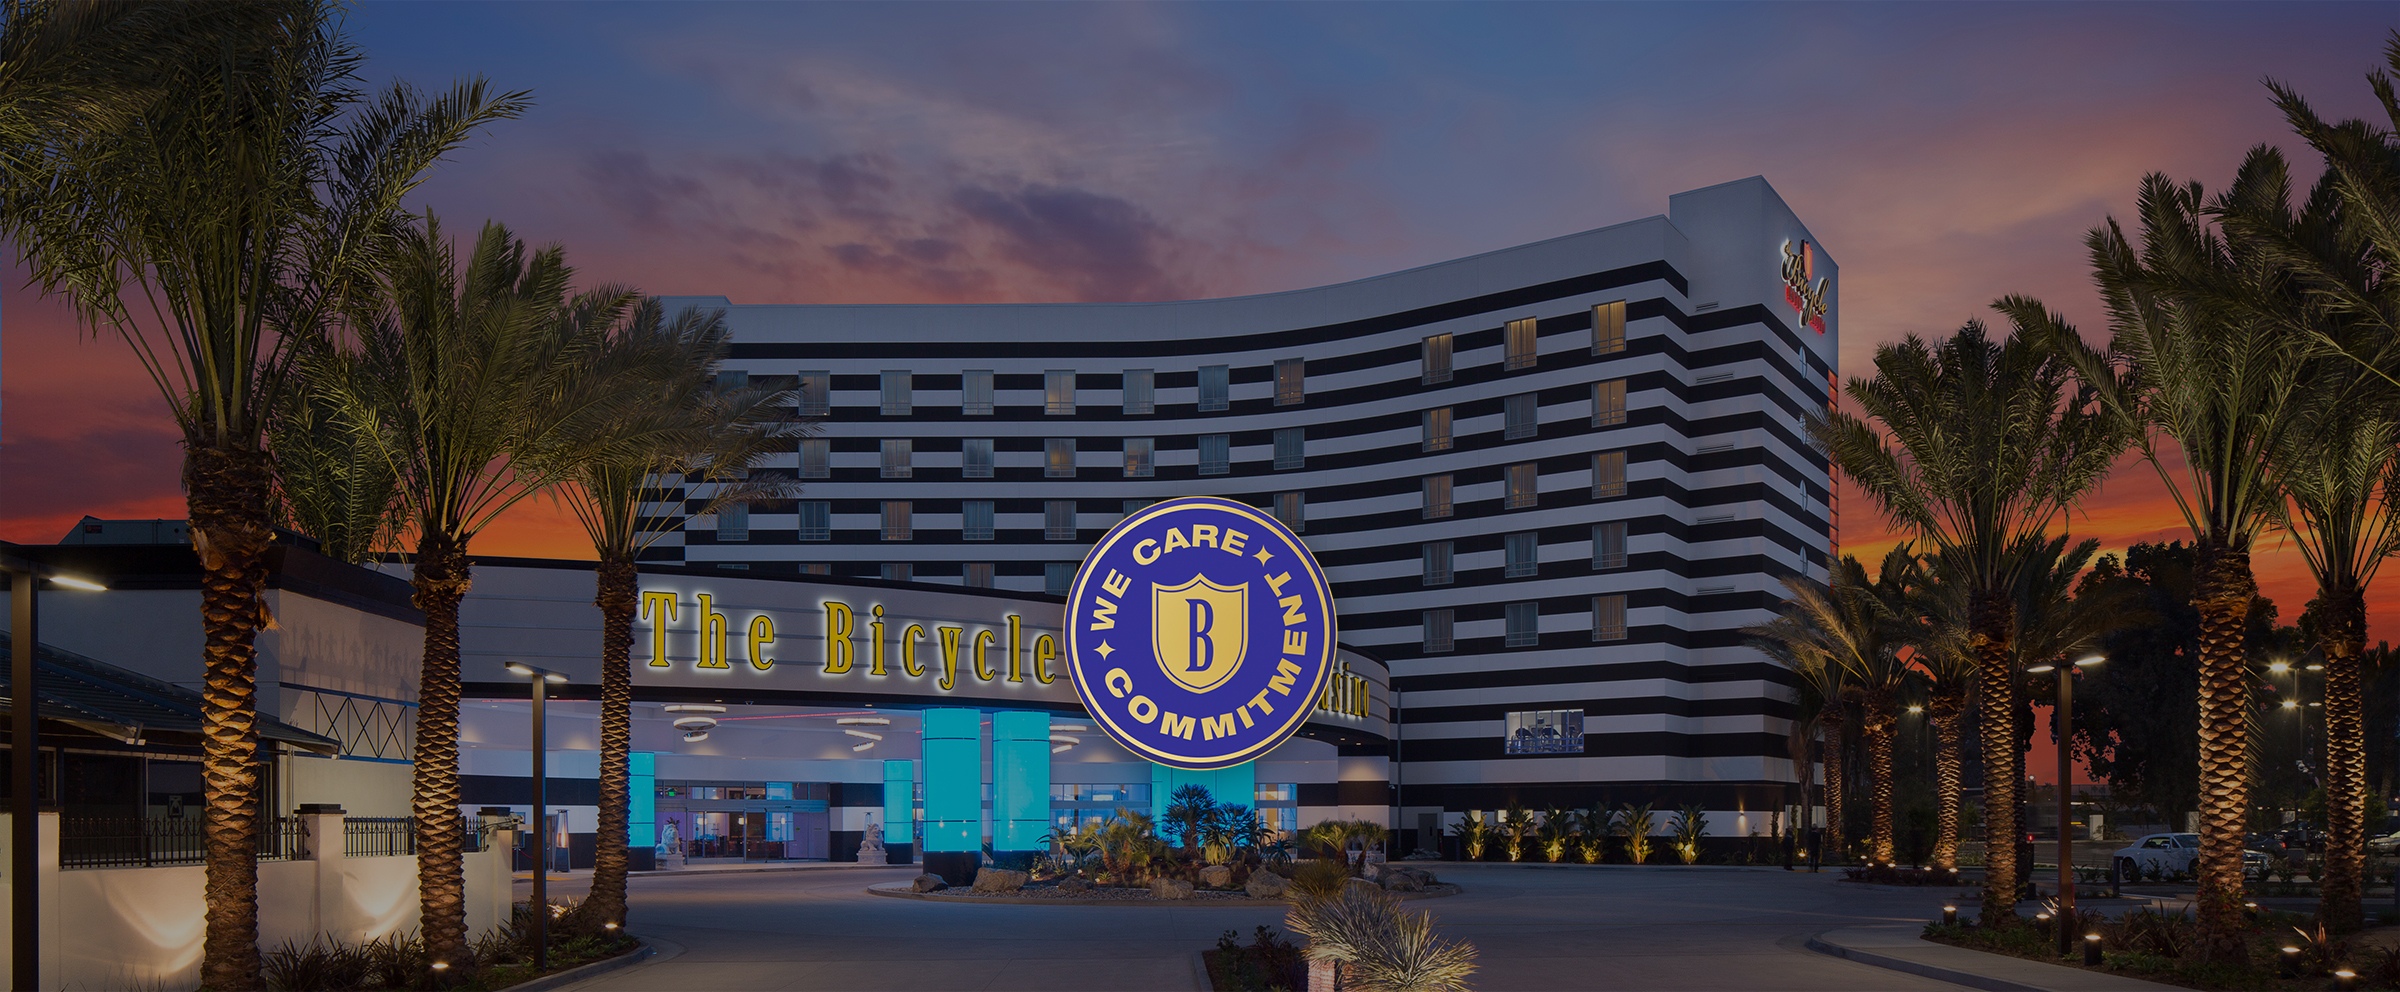 we care lg - Bicycle Casino Hotel Jobs Bell Gardens